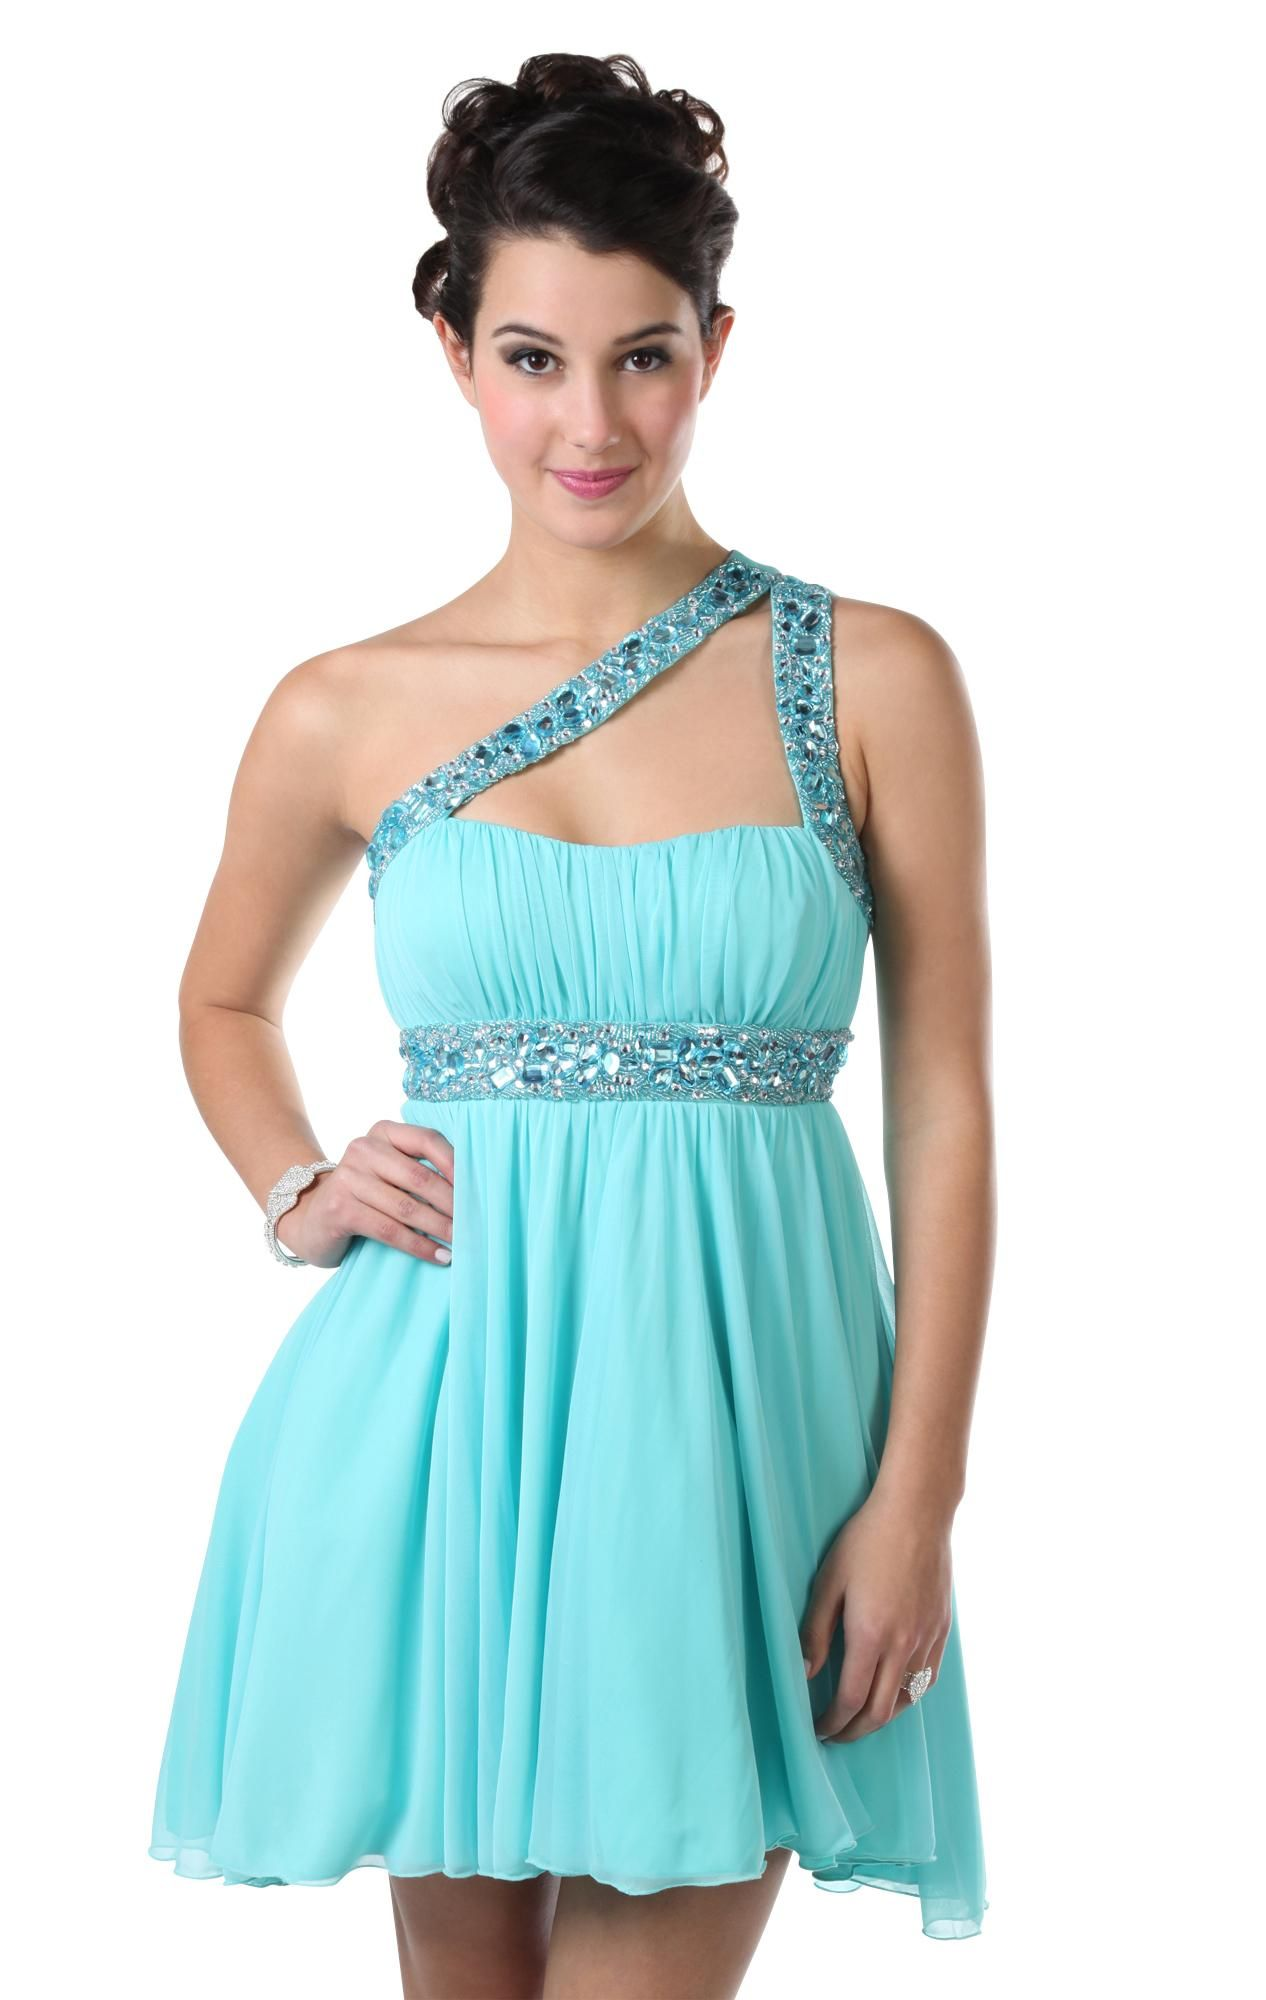 5661912991c Homecoming Dresses 2013 - Gomes Weine AG